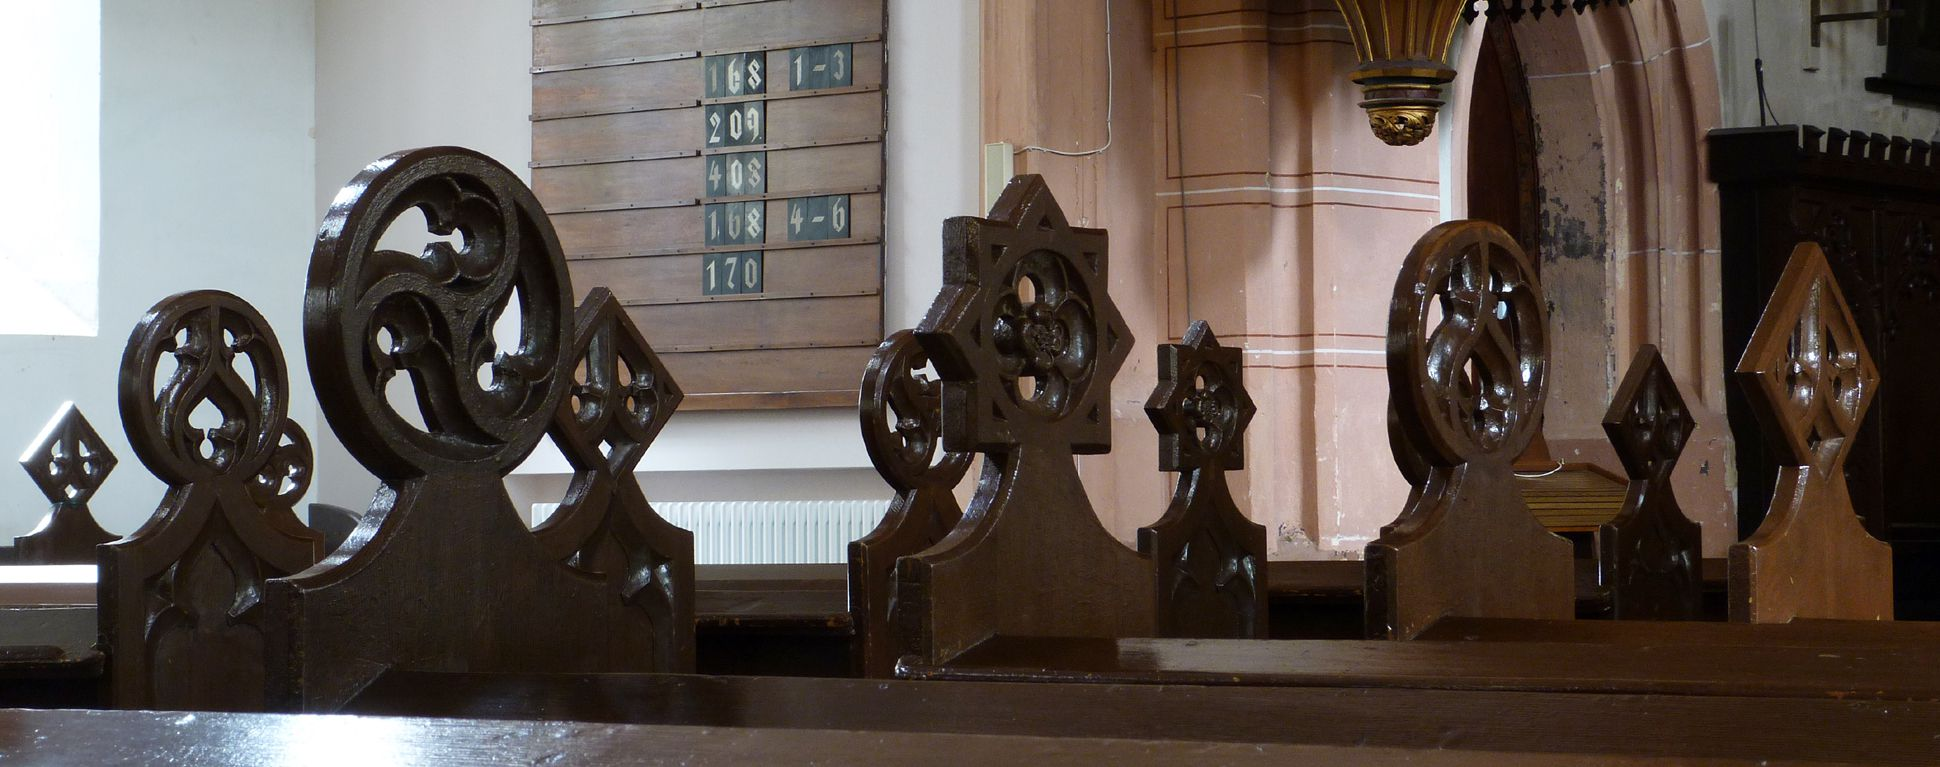 Parish Church St. Peter´s (Sonneberg) Finials of the pews